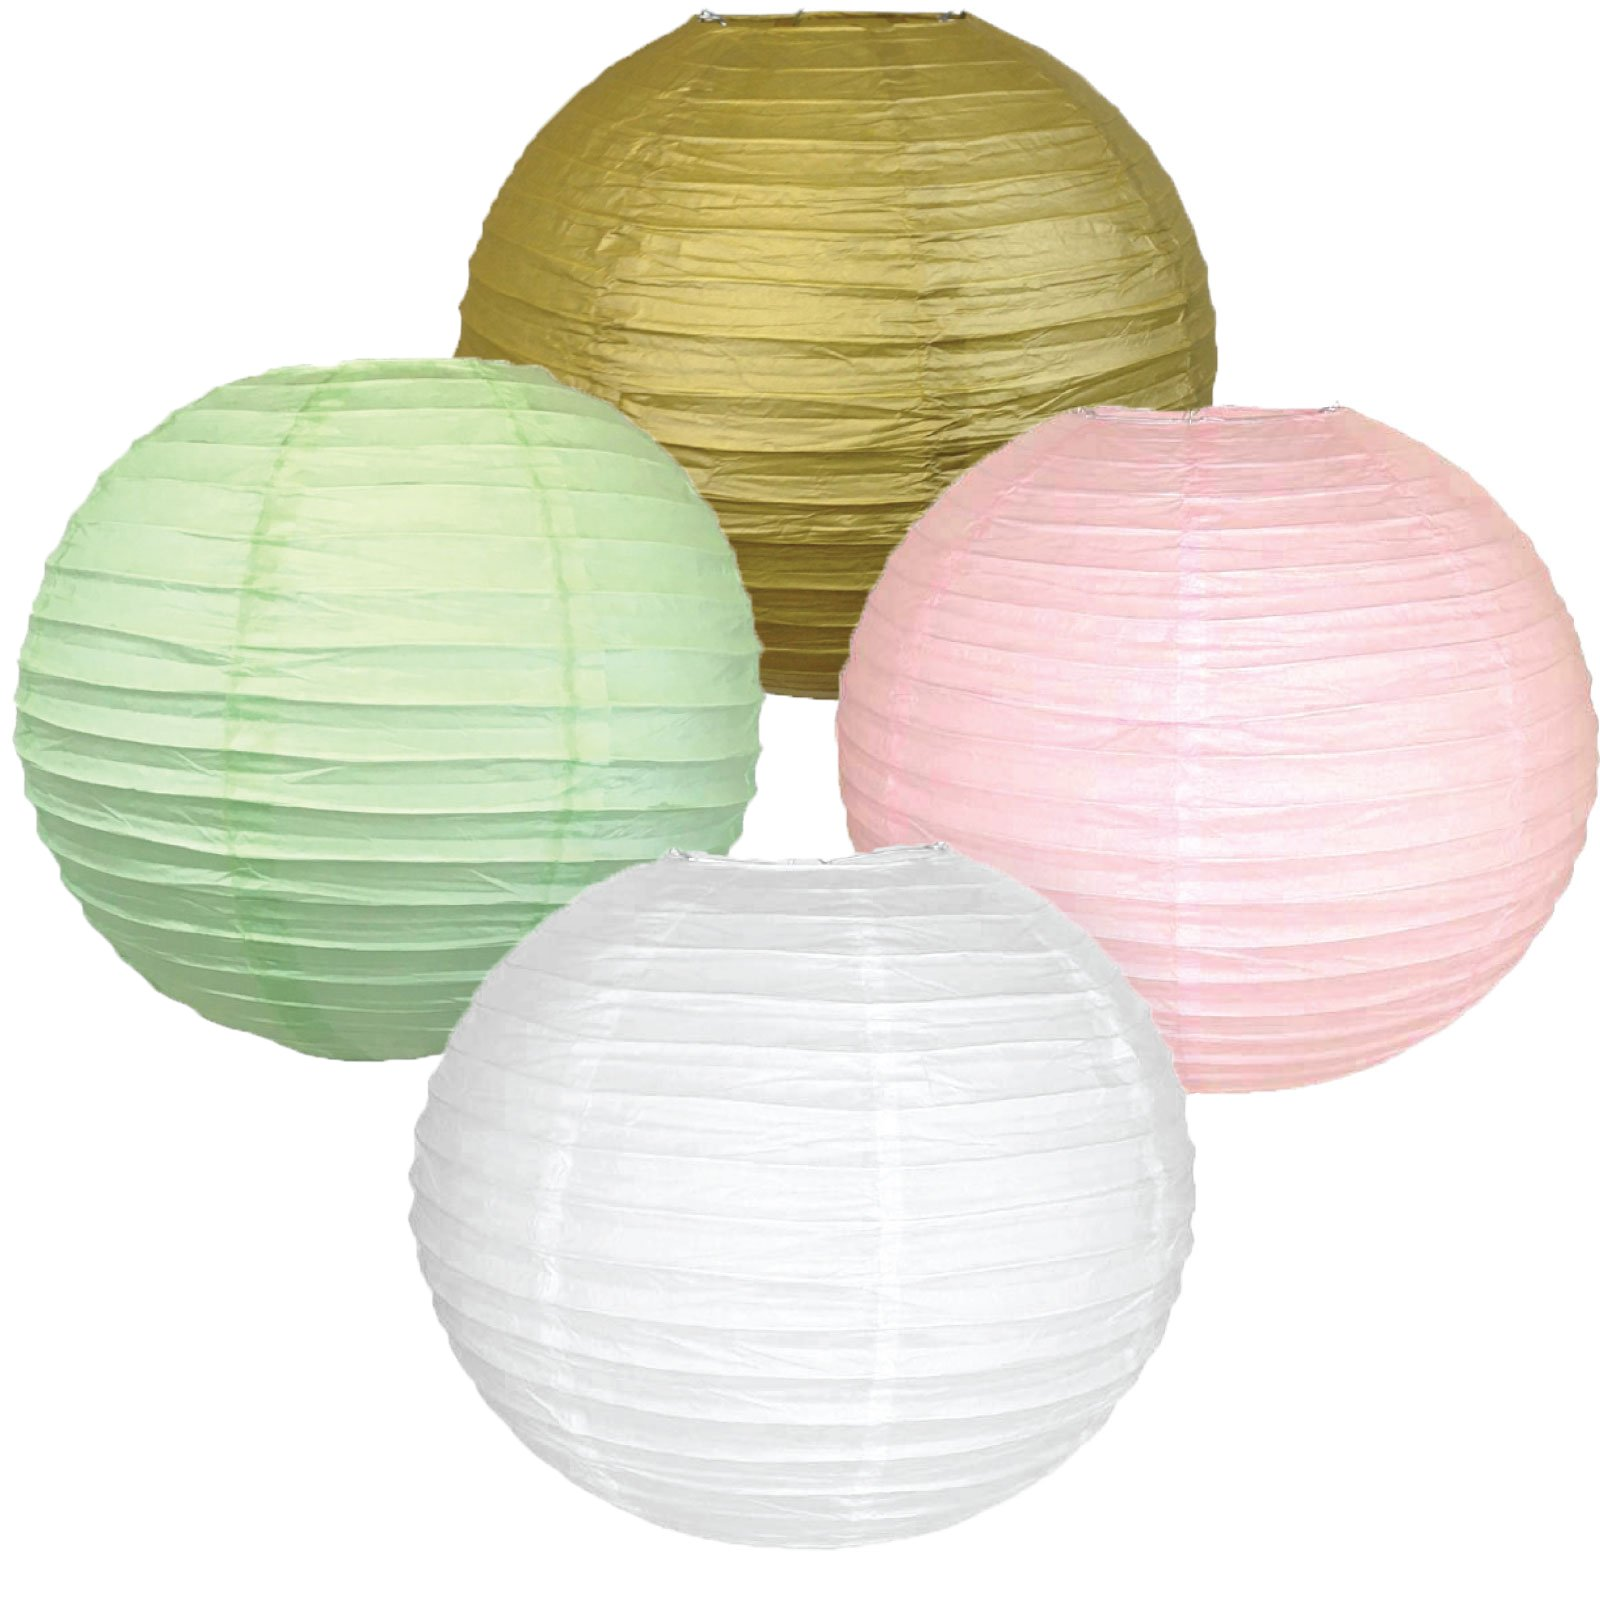 Just Artifacts Assorted Paper Lantern Set (12inch, Set of 4, Party Kit) – Includes (1) Gold, (1) Pale Pink, (1) Mint & (1) White Round Chinese/Japanese Paper Lanterns